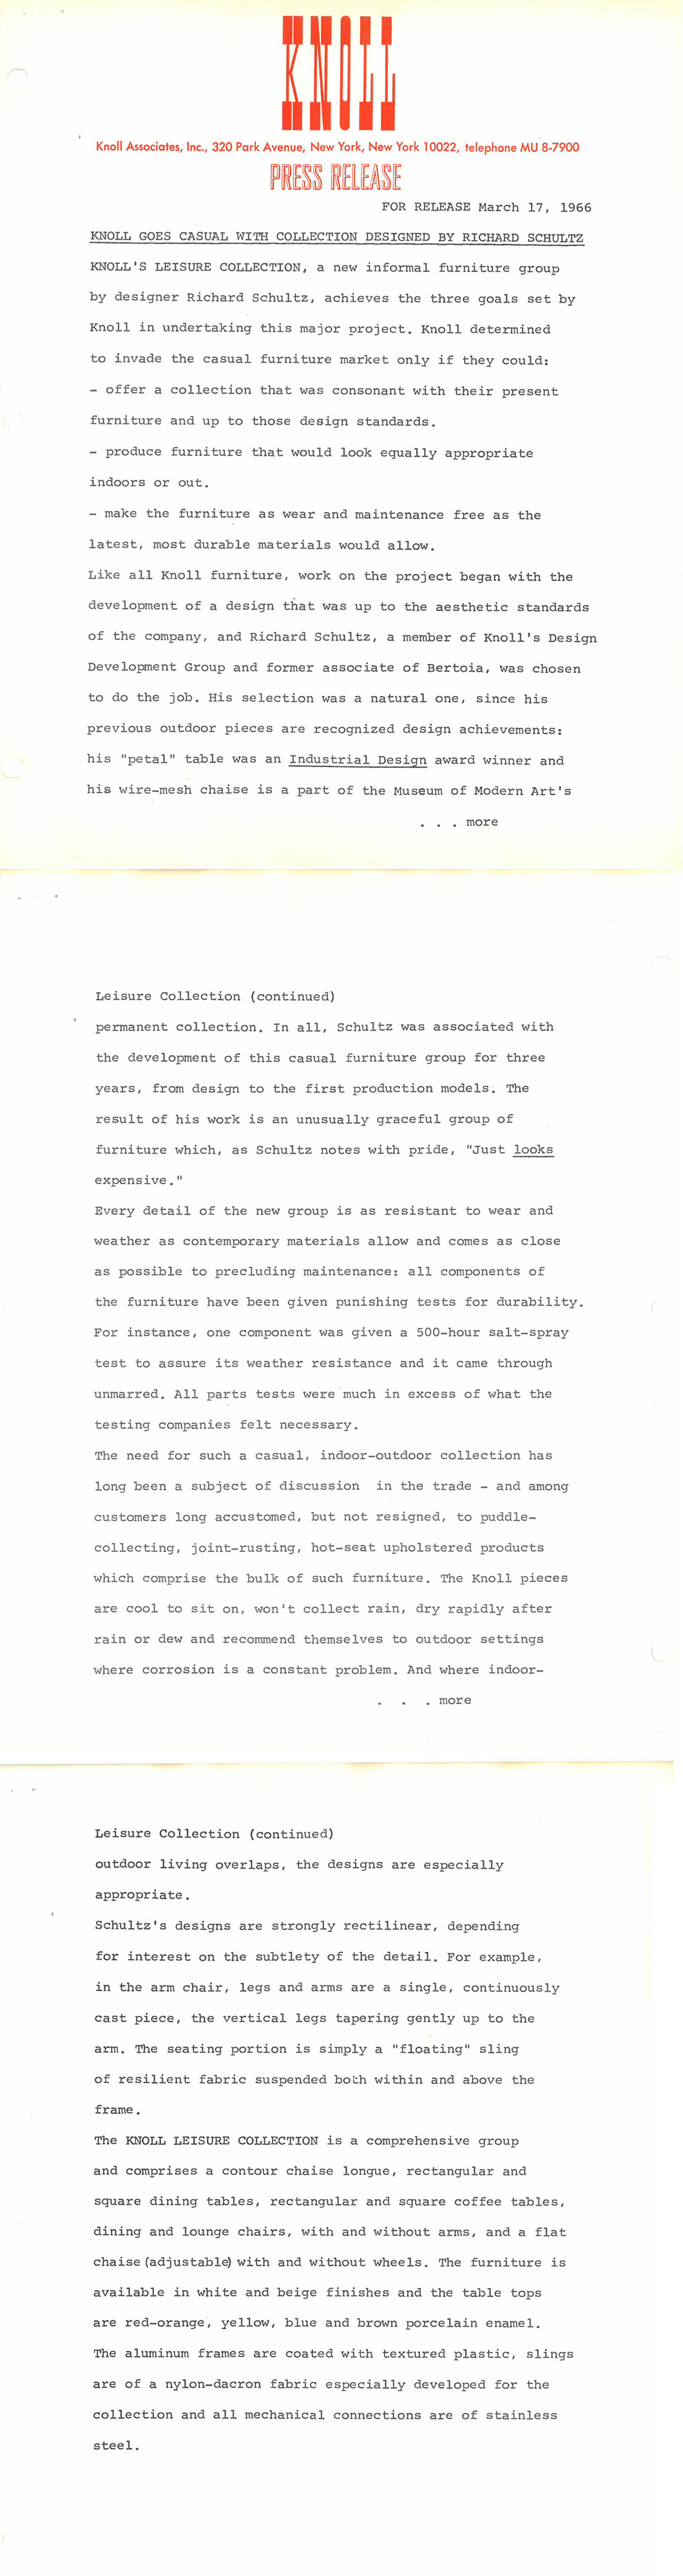 Schultz Archival Press Release